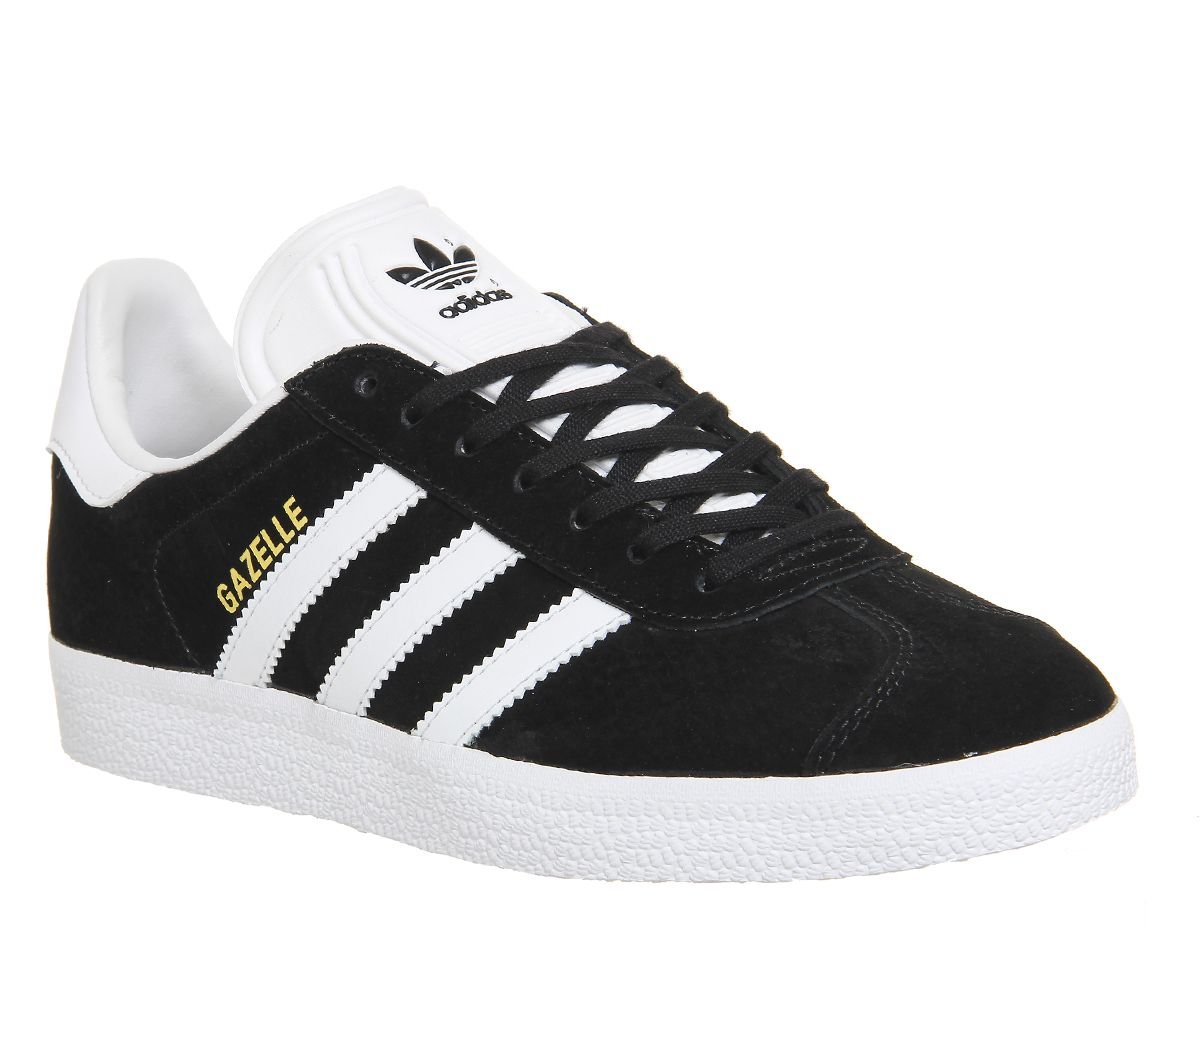 a0bc0f5a7 adidas Gazelle Core Black White - His trainers